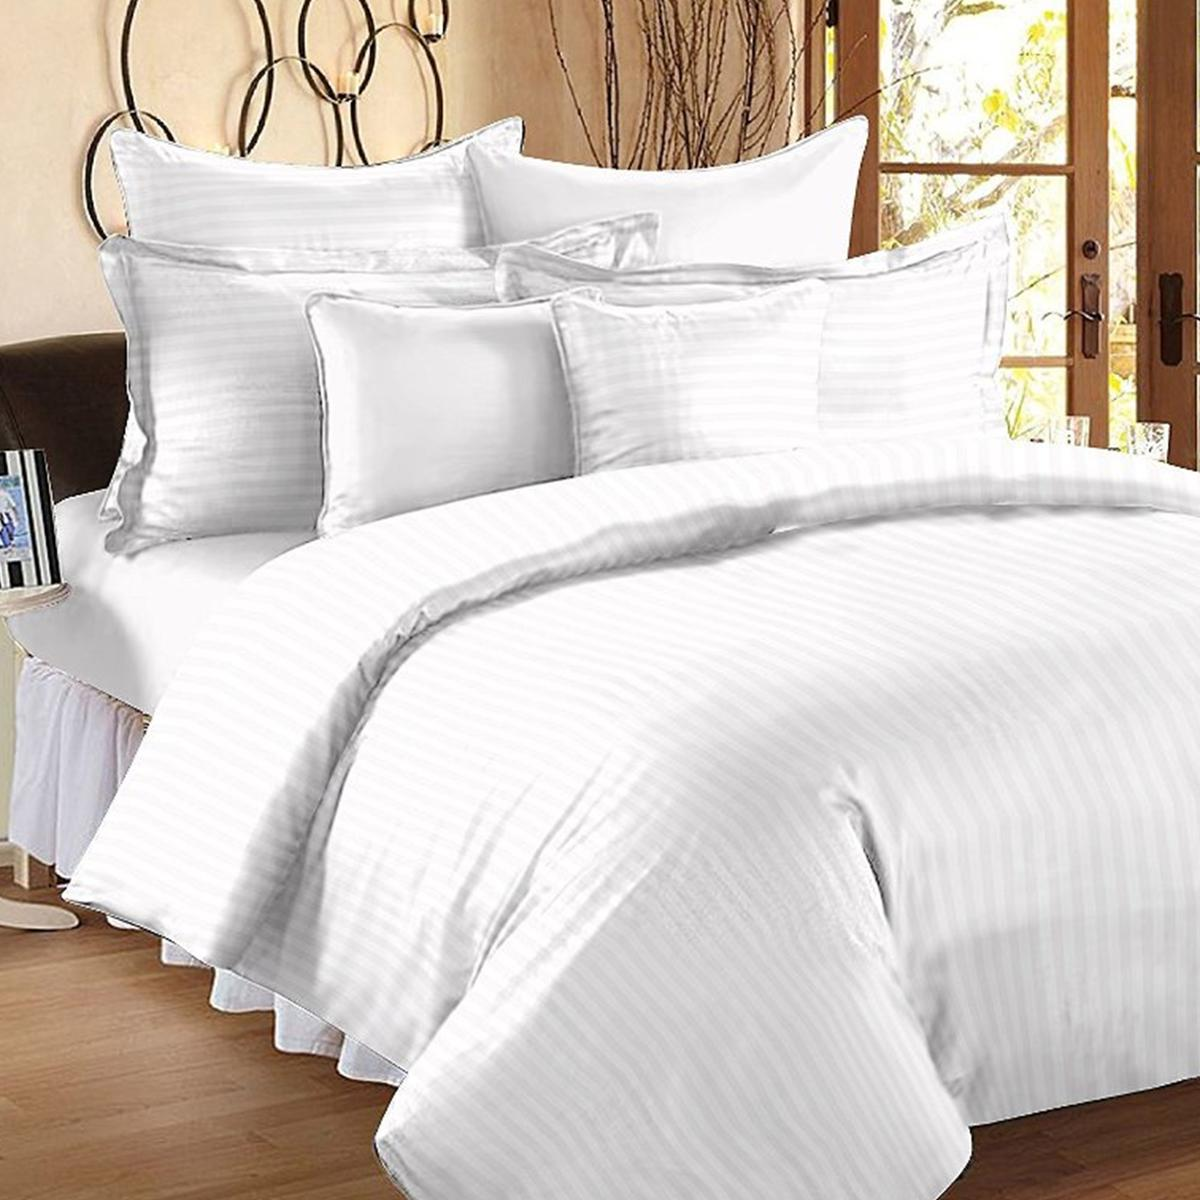 Glowing White Colored Self Design Cotton Double Bedsheet With Pillow Cover